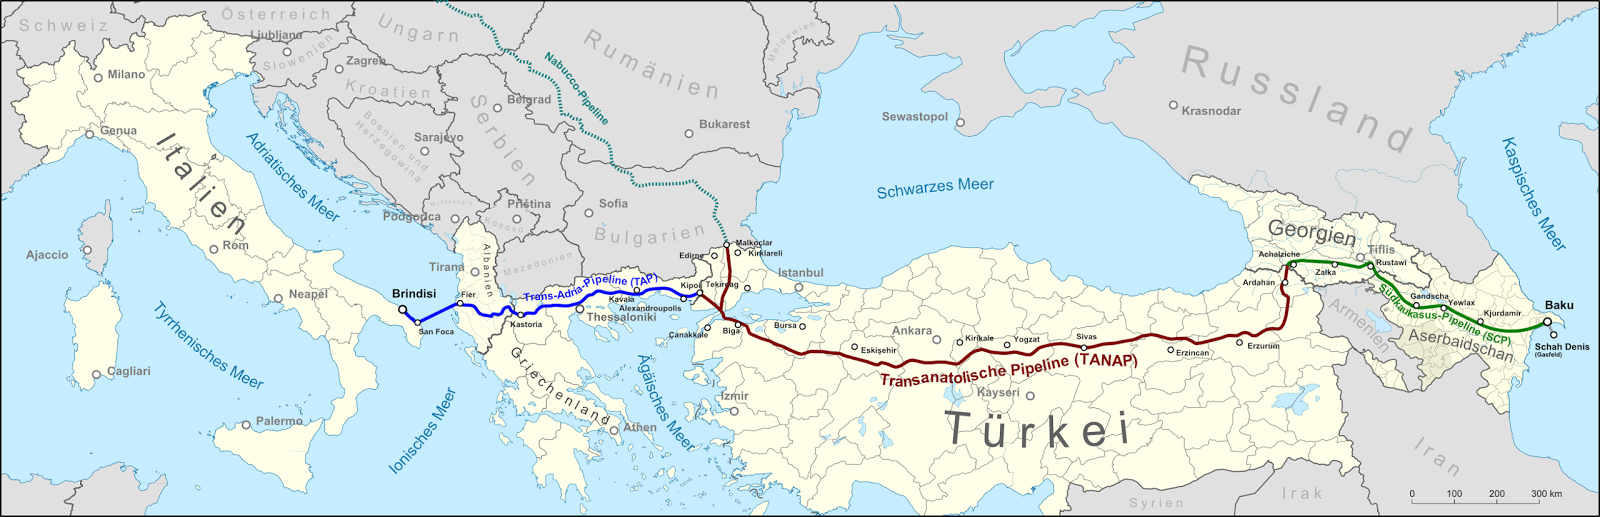 for information on azerbaijan s trans anatolian gas pipeline referred to in the article see trans anatolian gas pipeline wikipedia tanap